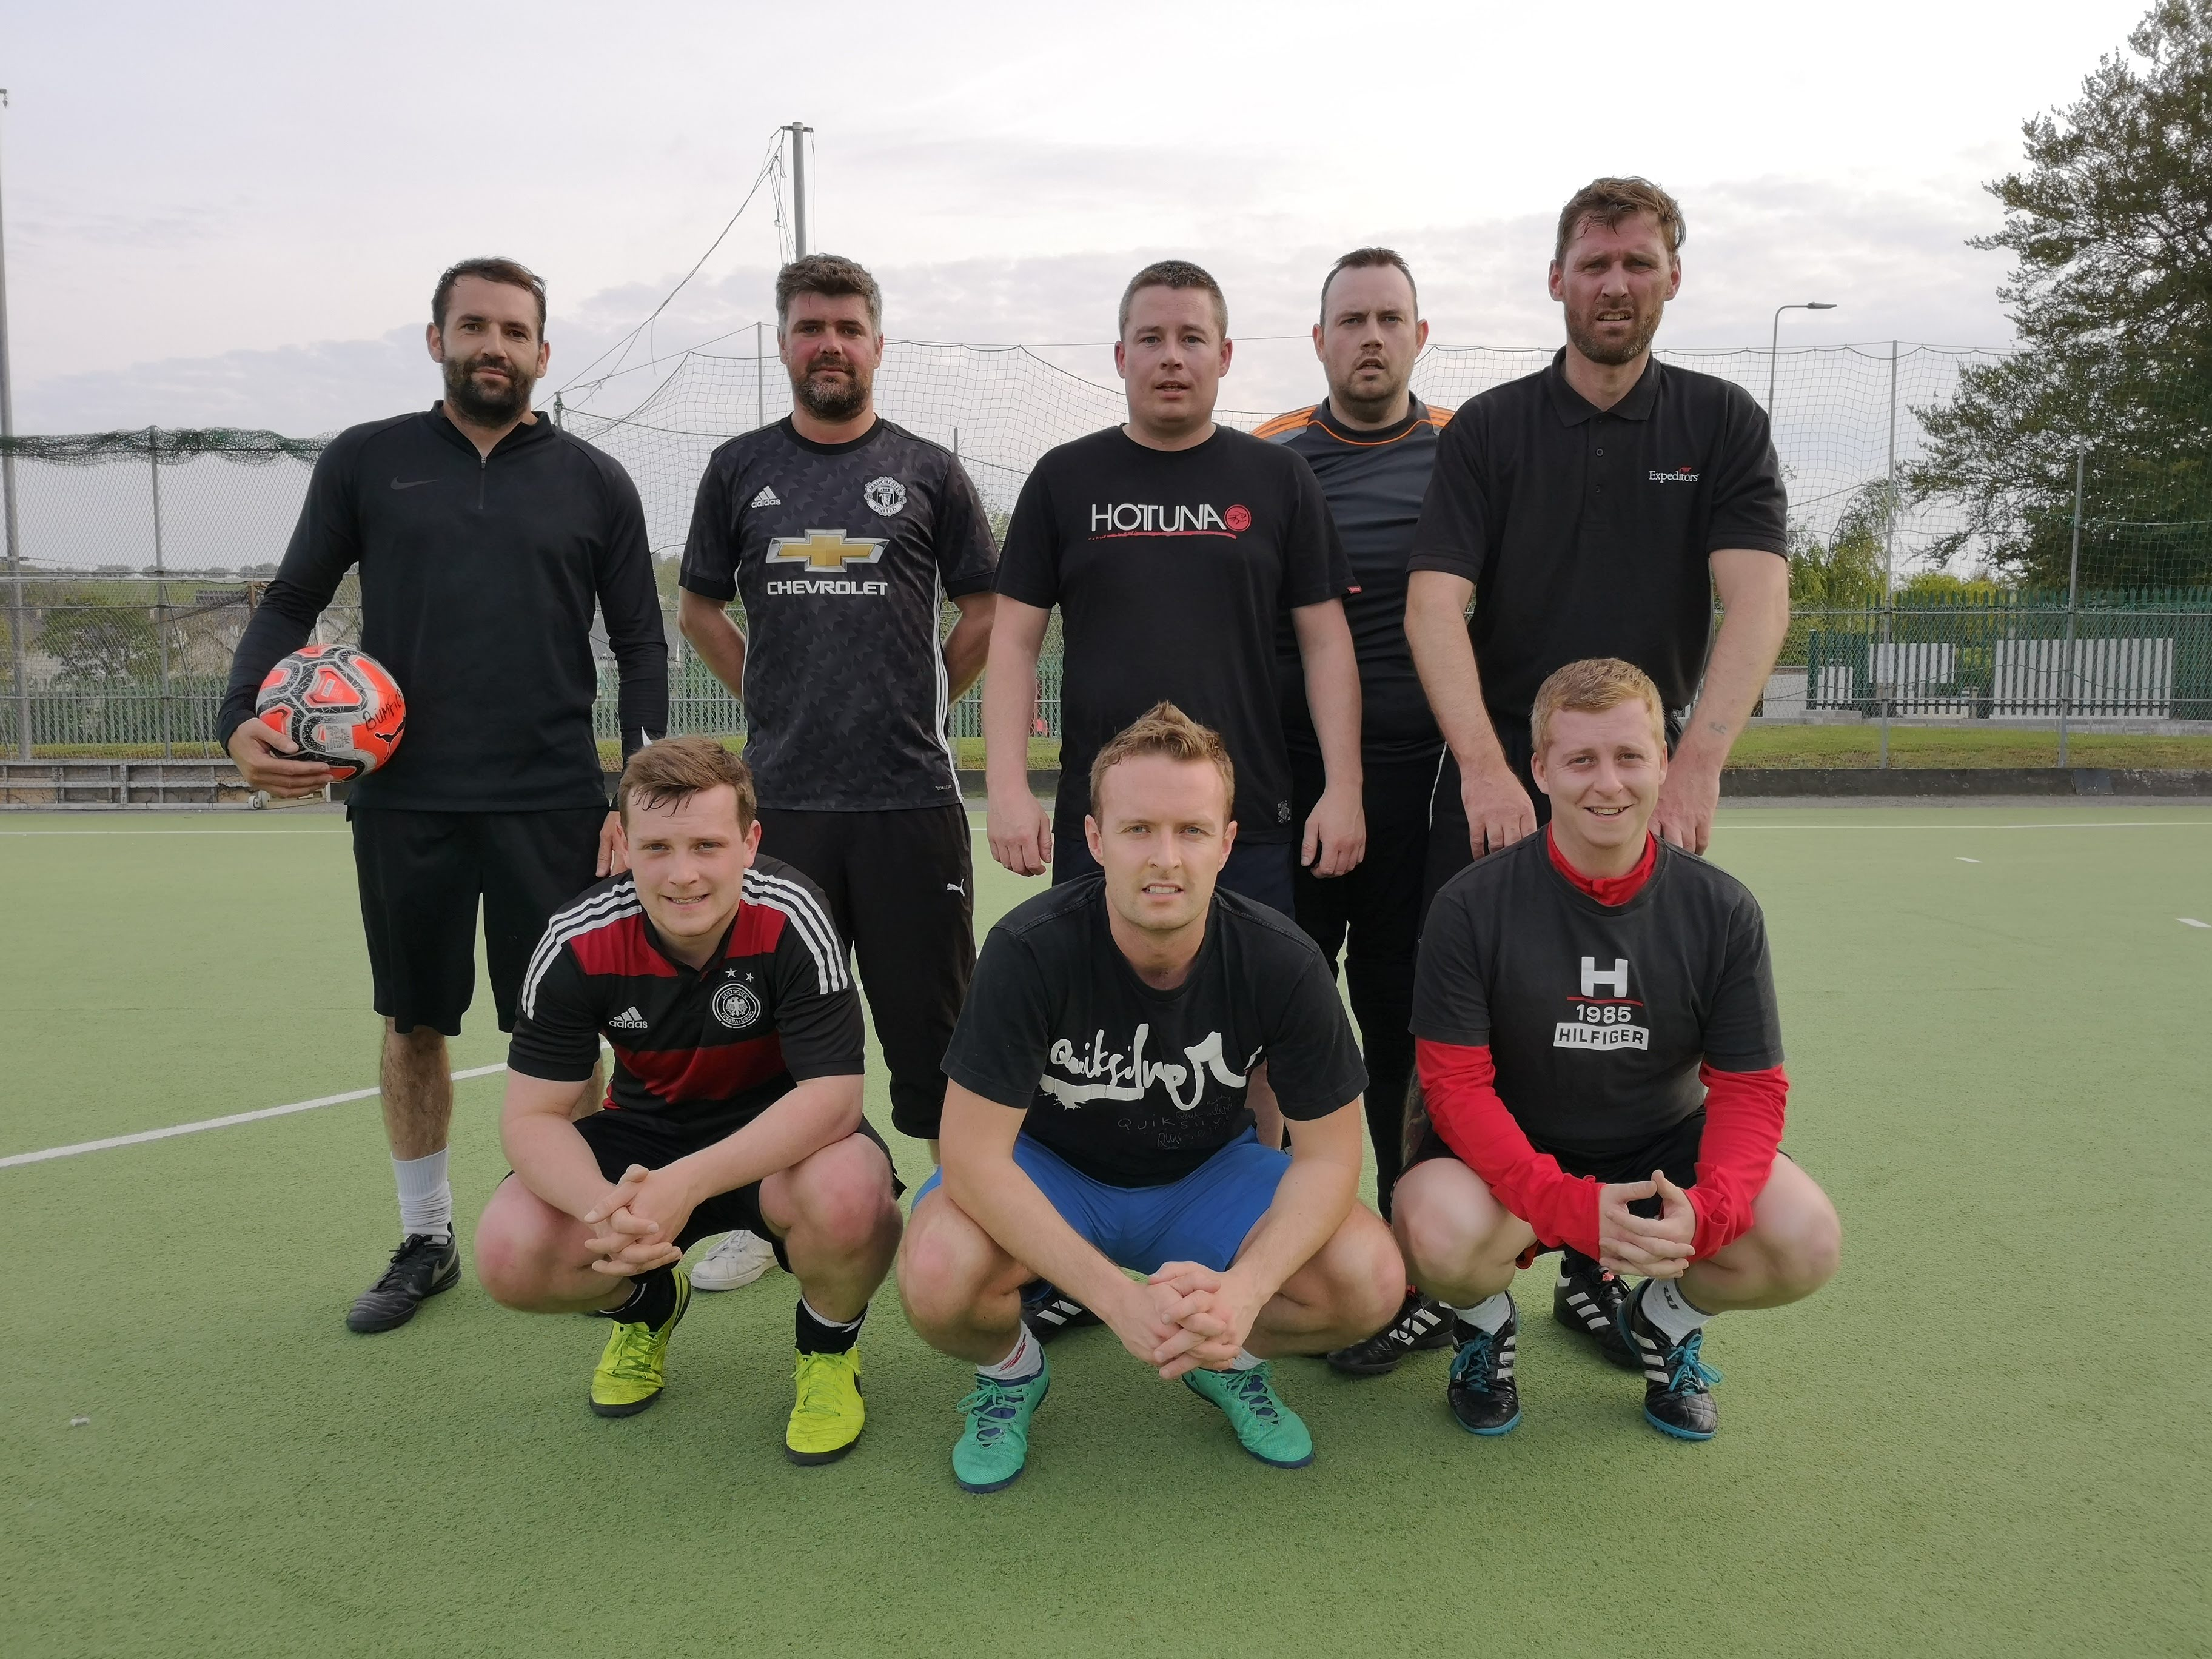 footy.ie soccer in cork team photo